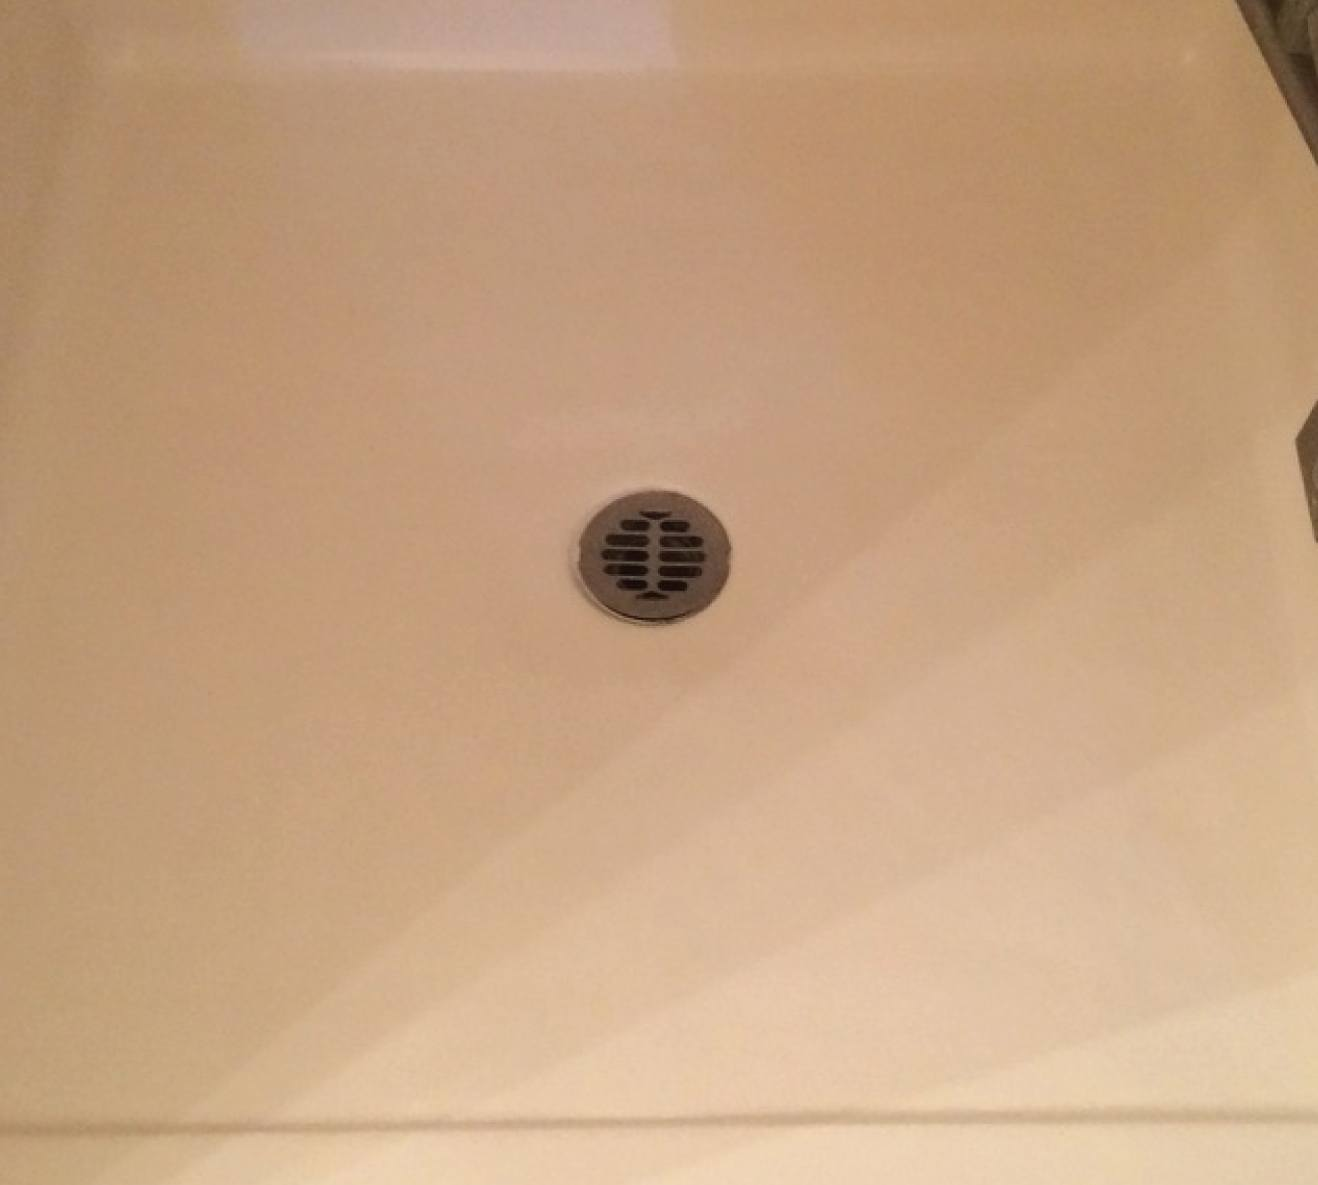 Bathroom sink chip repair - Repair